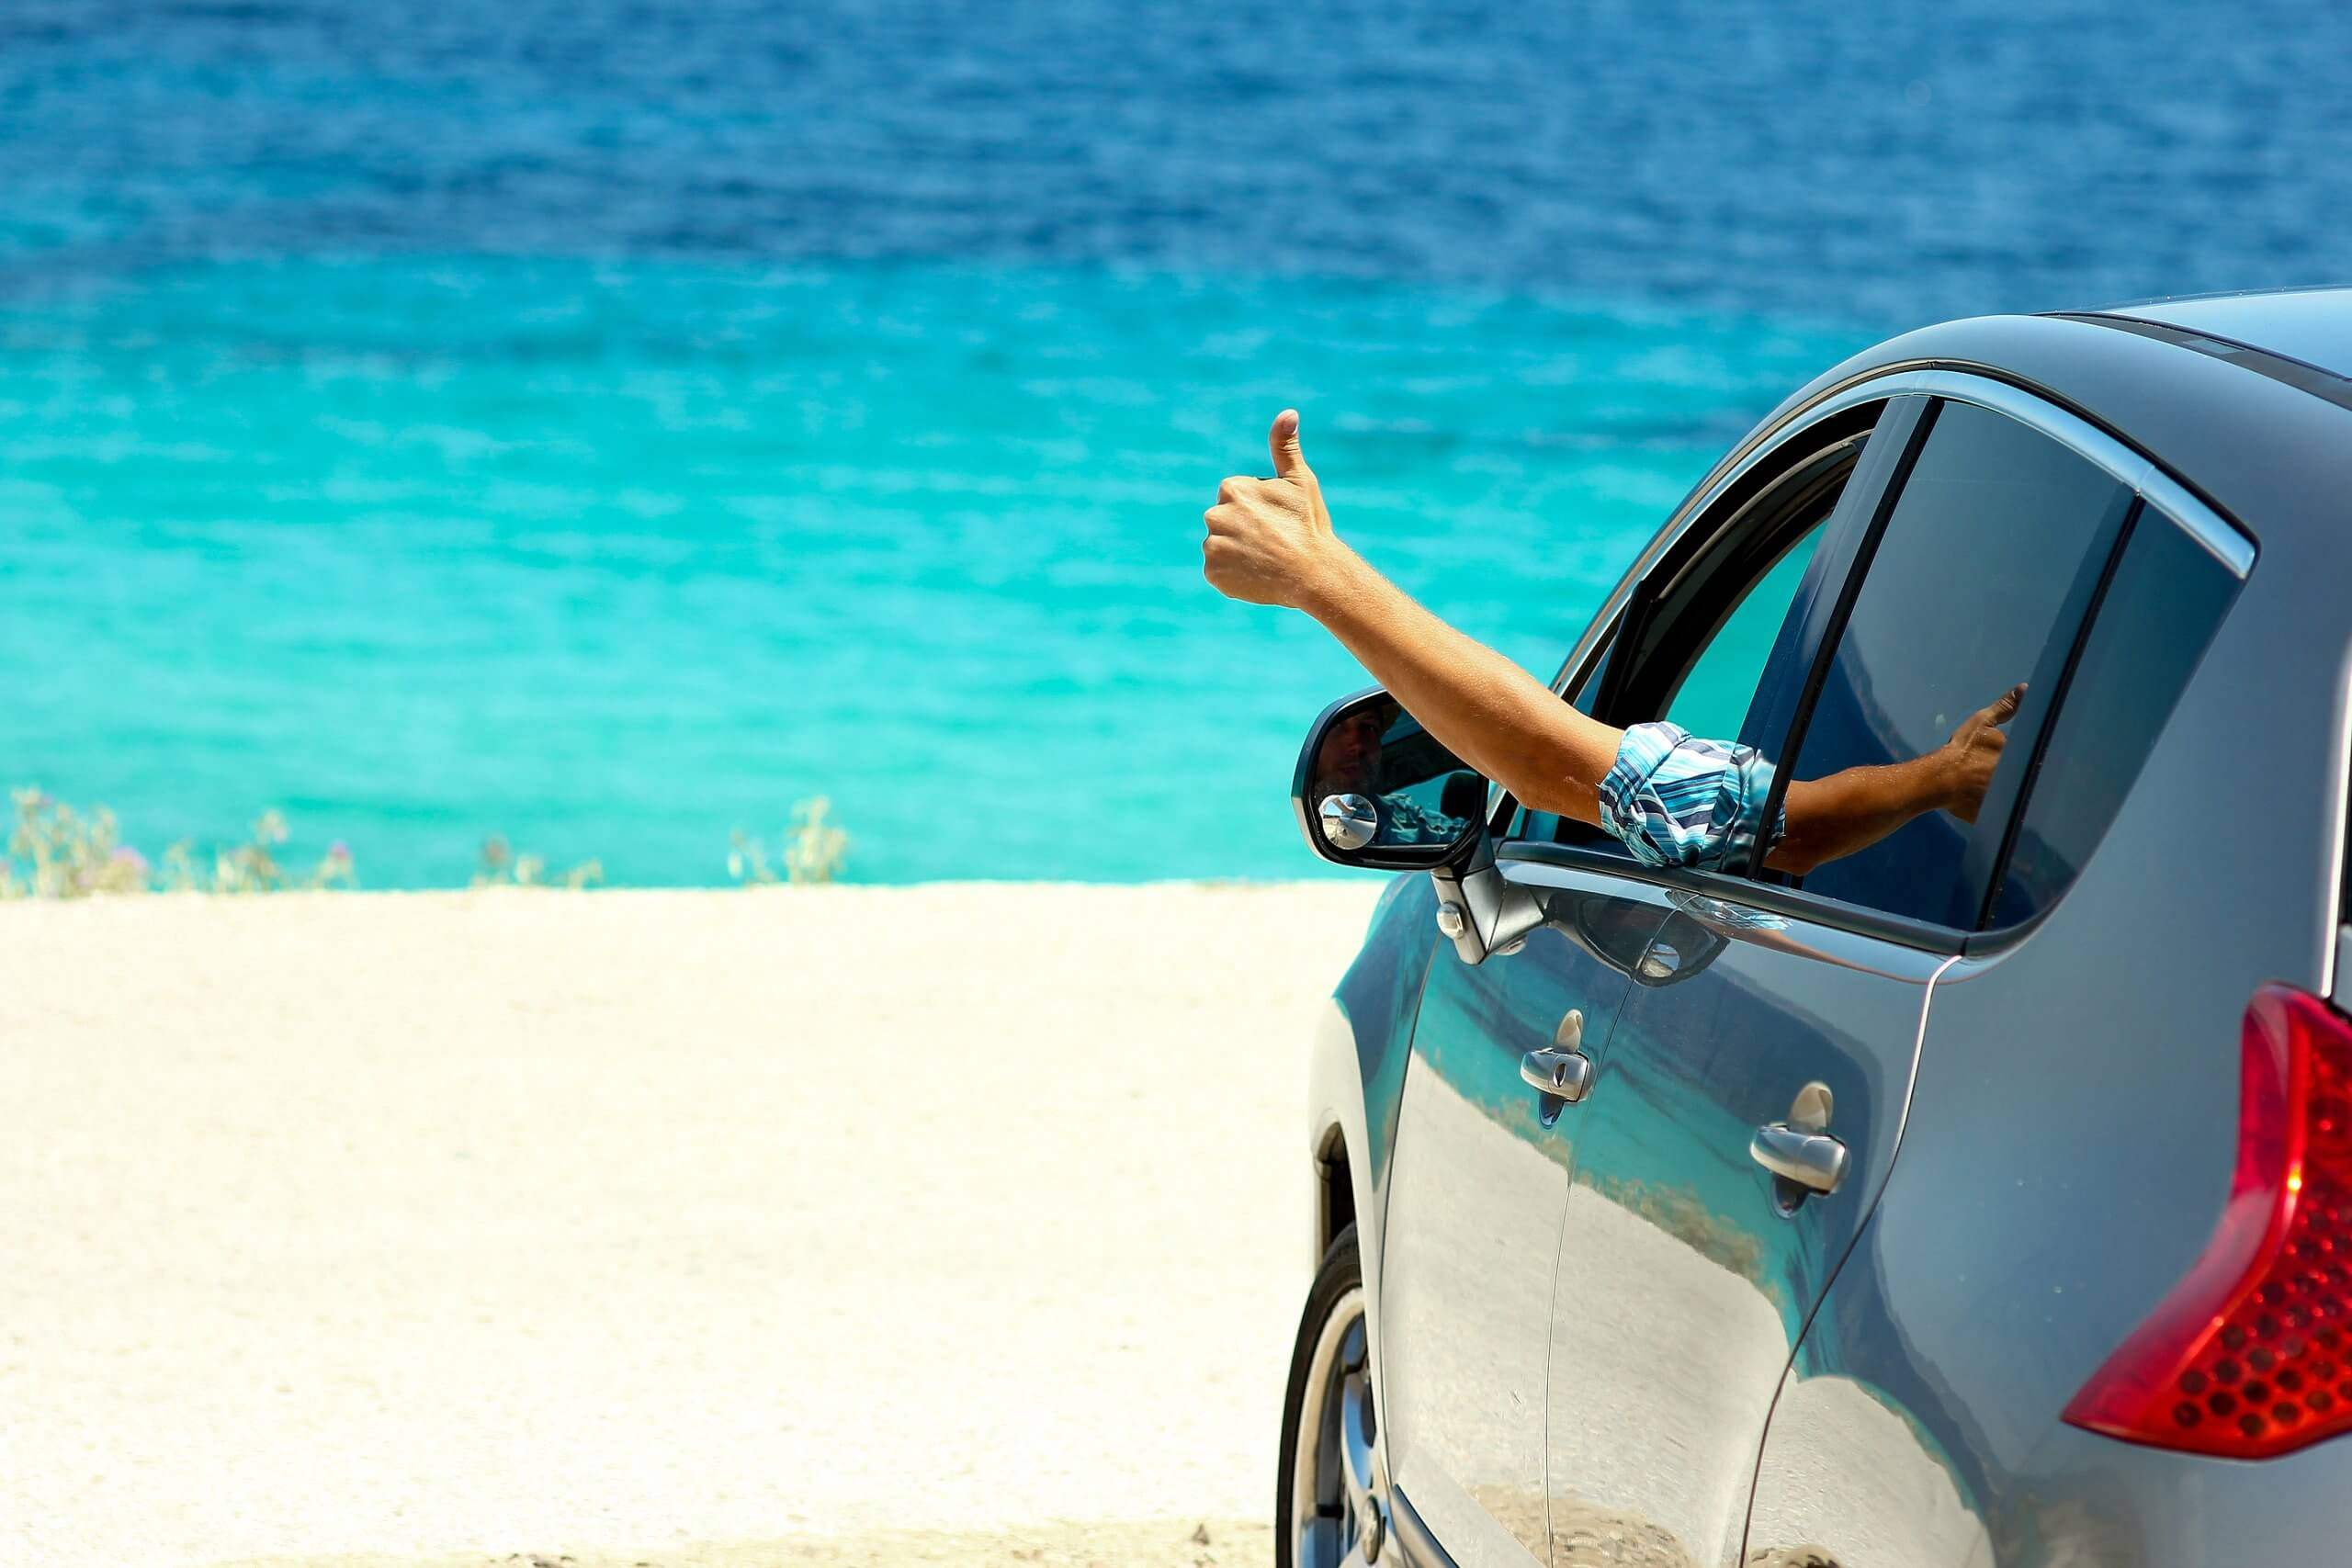 happy driver with thumb out the window of grey car on sandy beach with blue sea in background